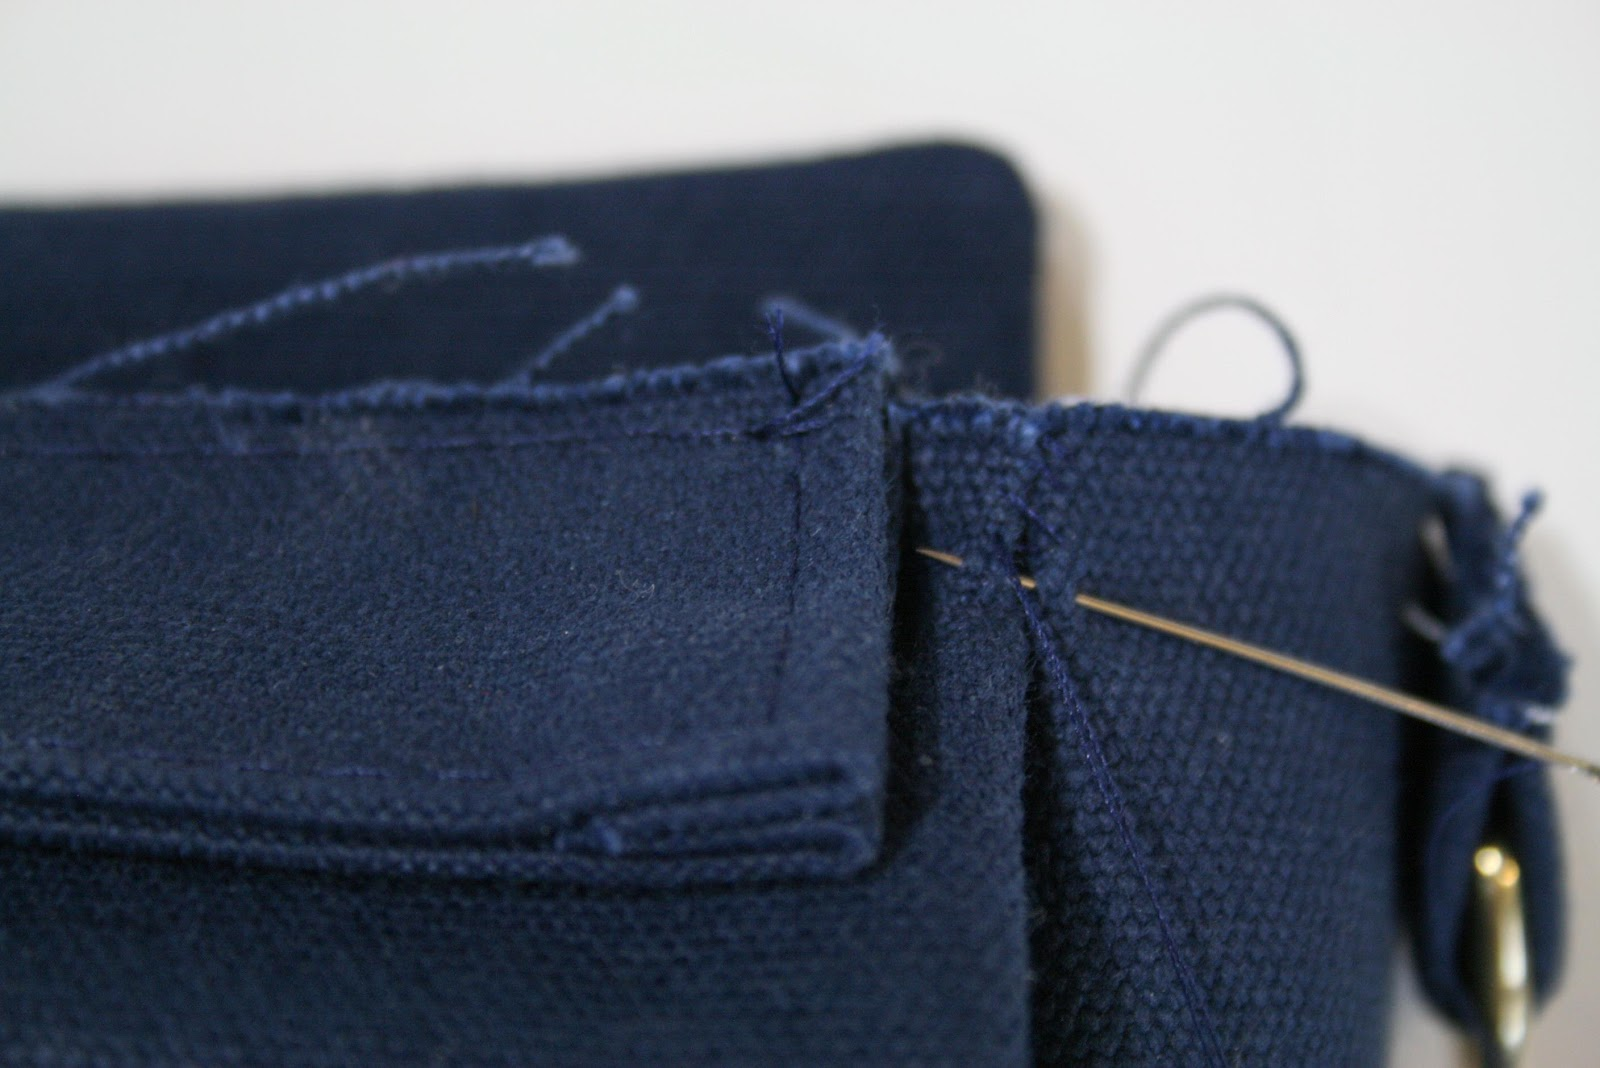 Mystery Sew Along Part 5: Lining, Top Stitching & Zippers